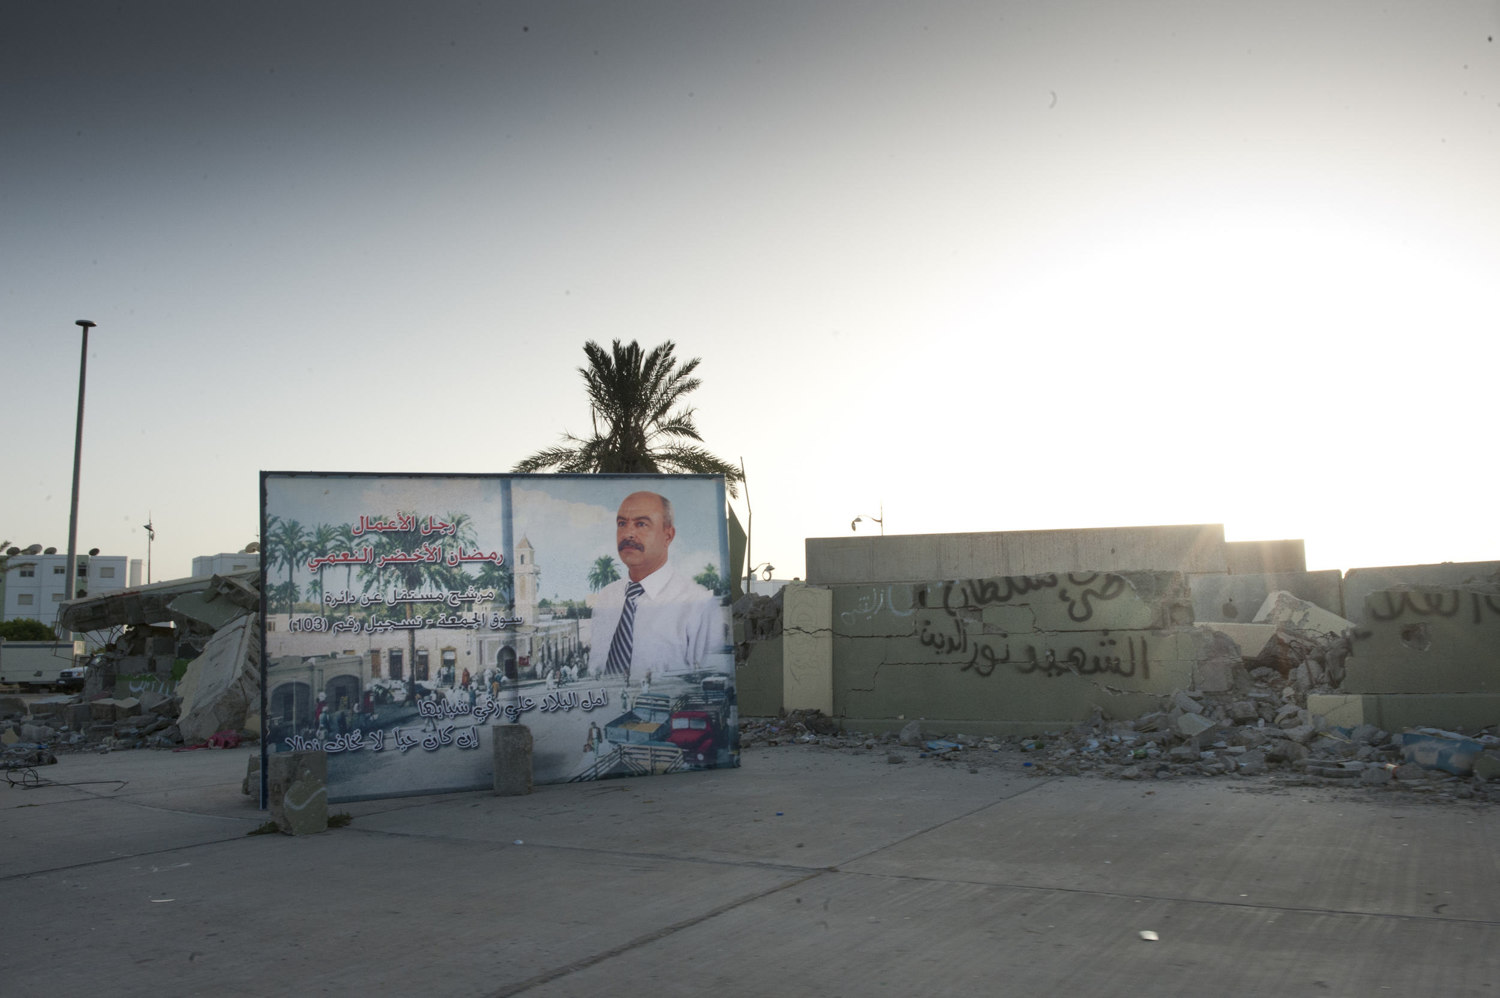 A campaign poster outside of Bab Azizya, the palace where Col. Gaddafi lived. It has since been ransacked and destroyed.